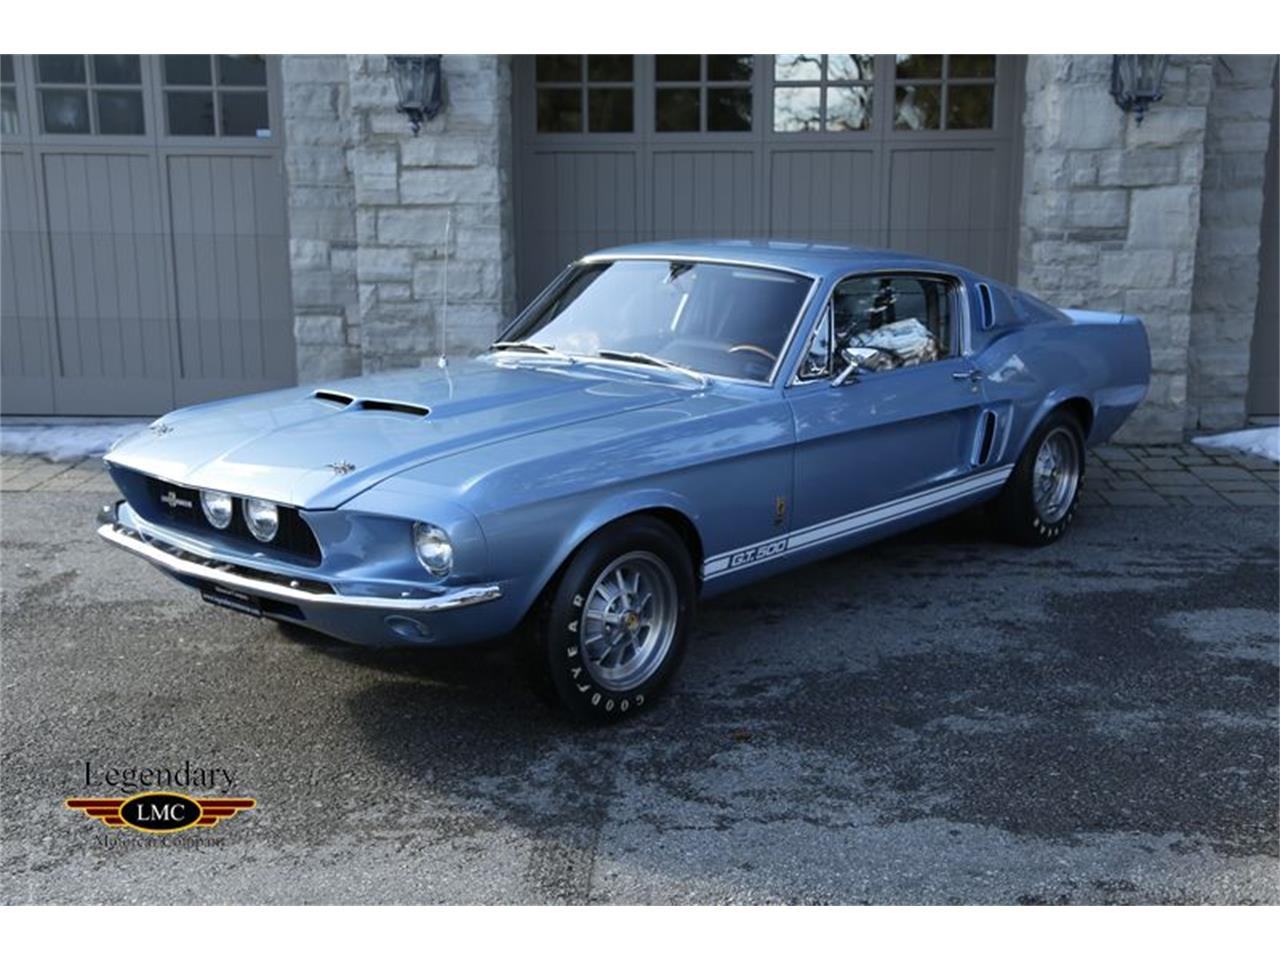 Large picture of 67 mustang shelby gt500 fastback isbb